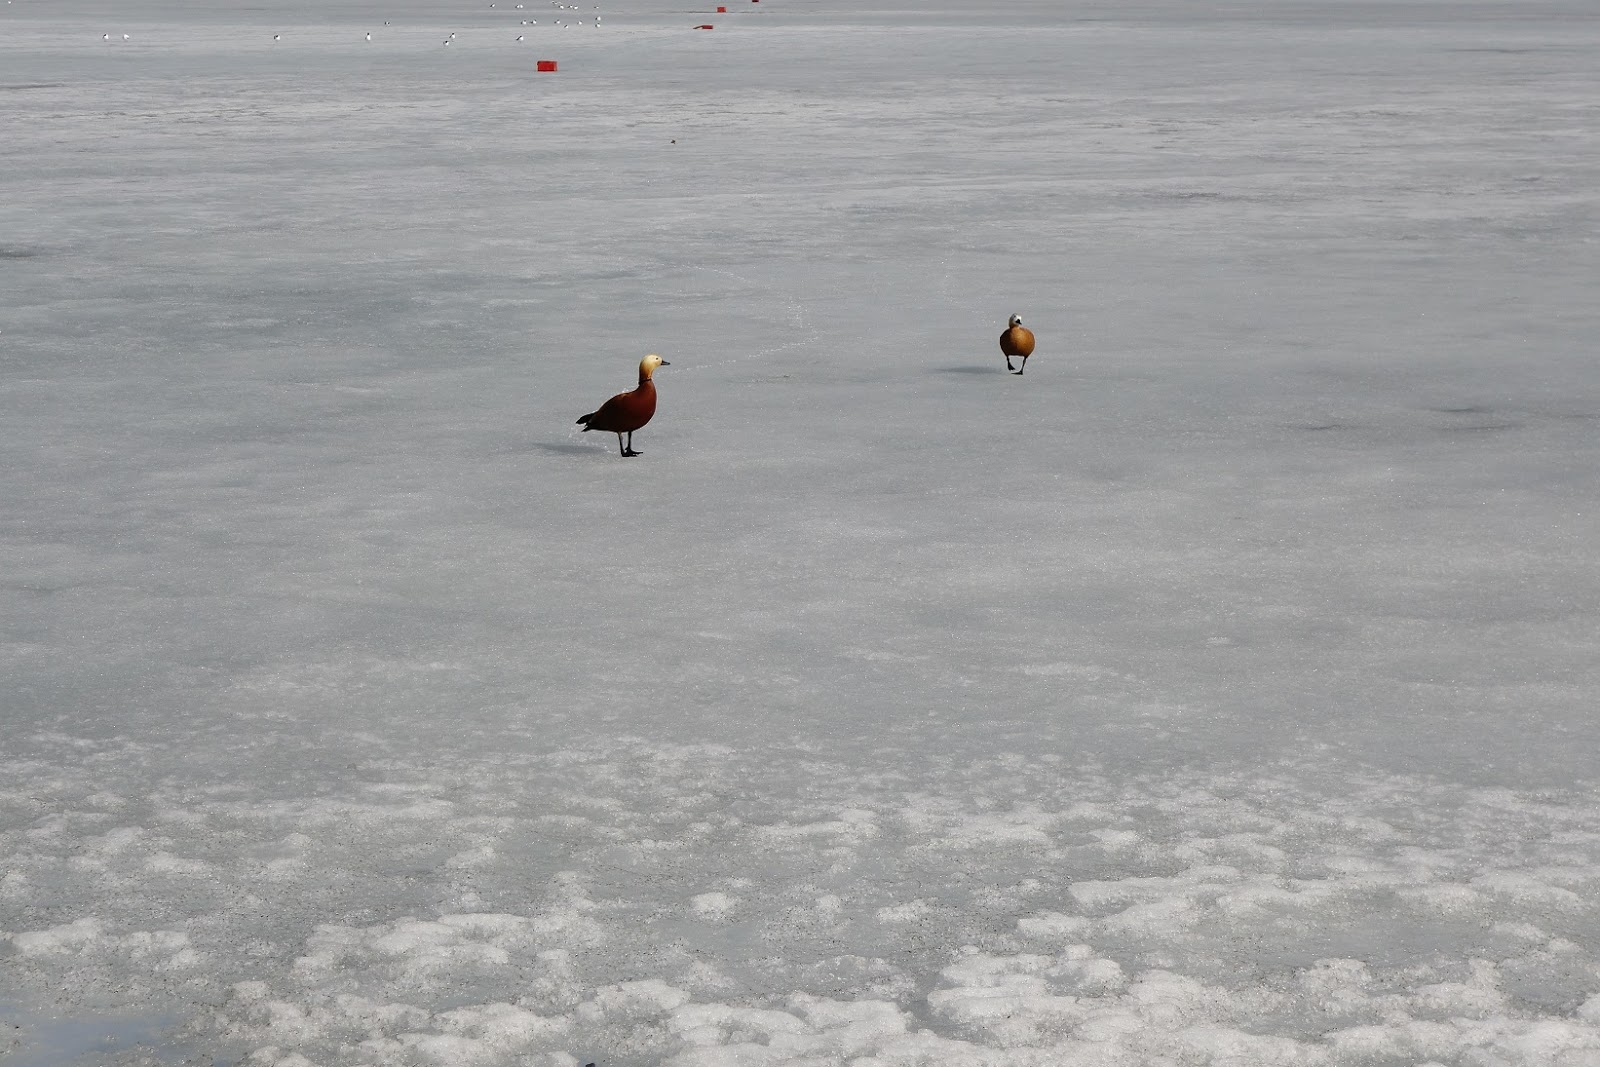 Soapbox photos: Ducks Wait For Snow to Melt